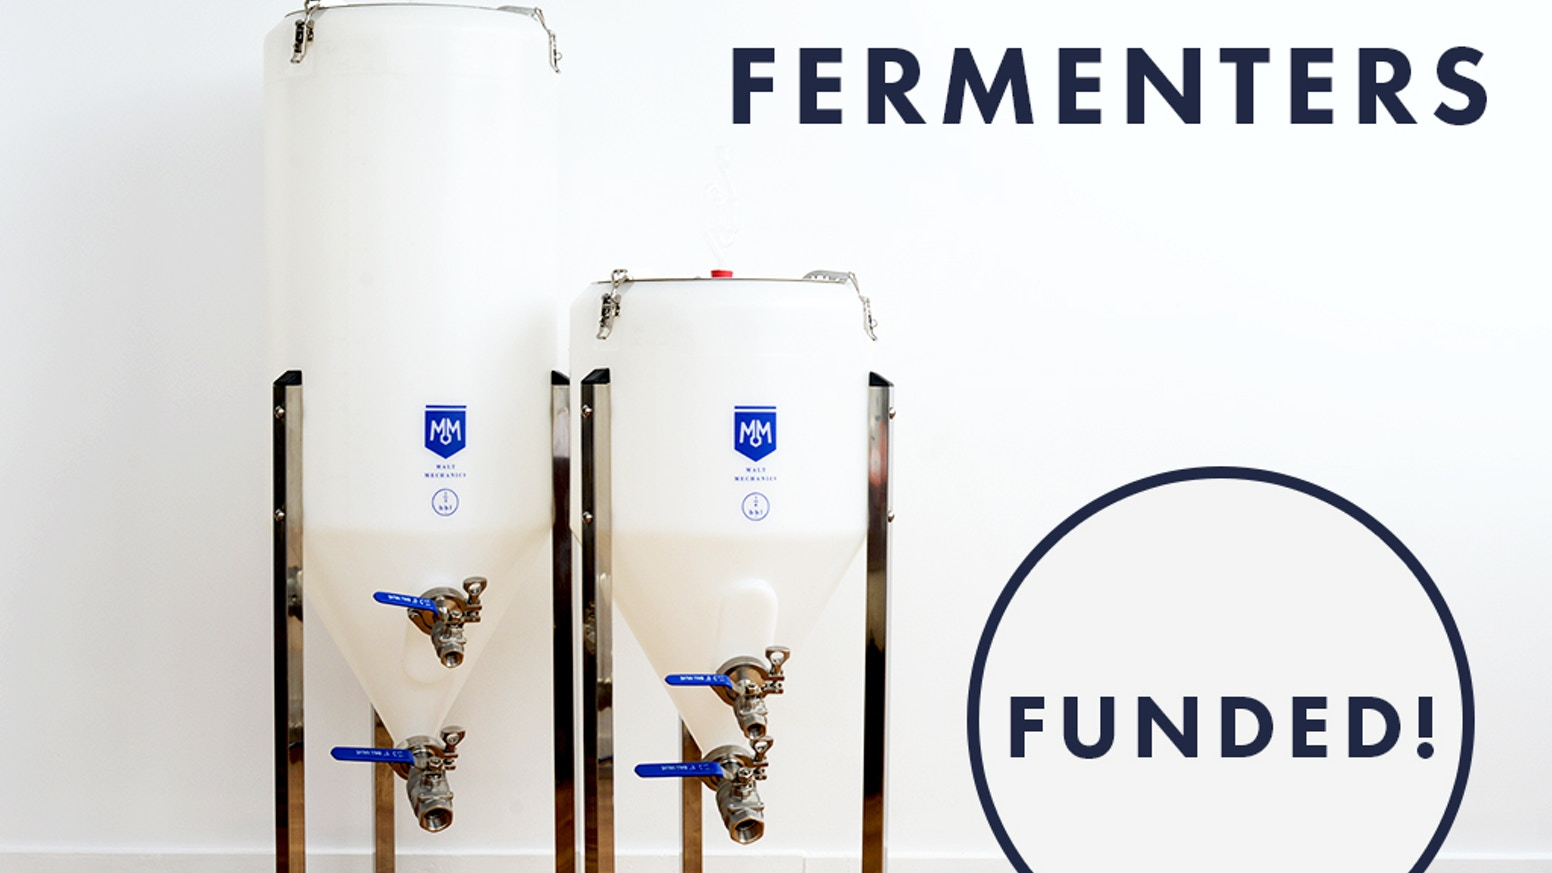 Plastic / Stainless Conical beer fermenters. Available in Quarter Barrel (8Gal/30L) and Half Barrel (16Gal/60L) for home brewing.